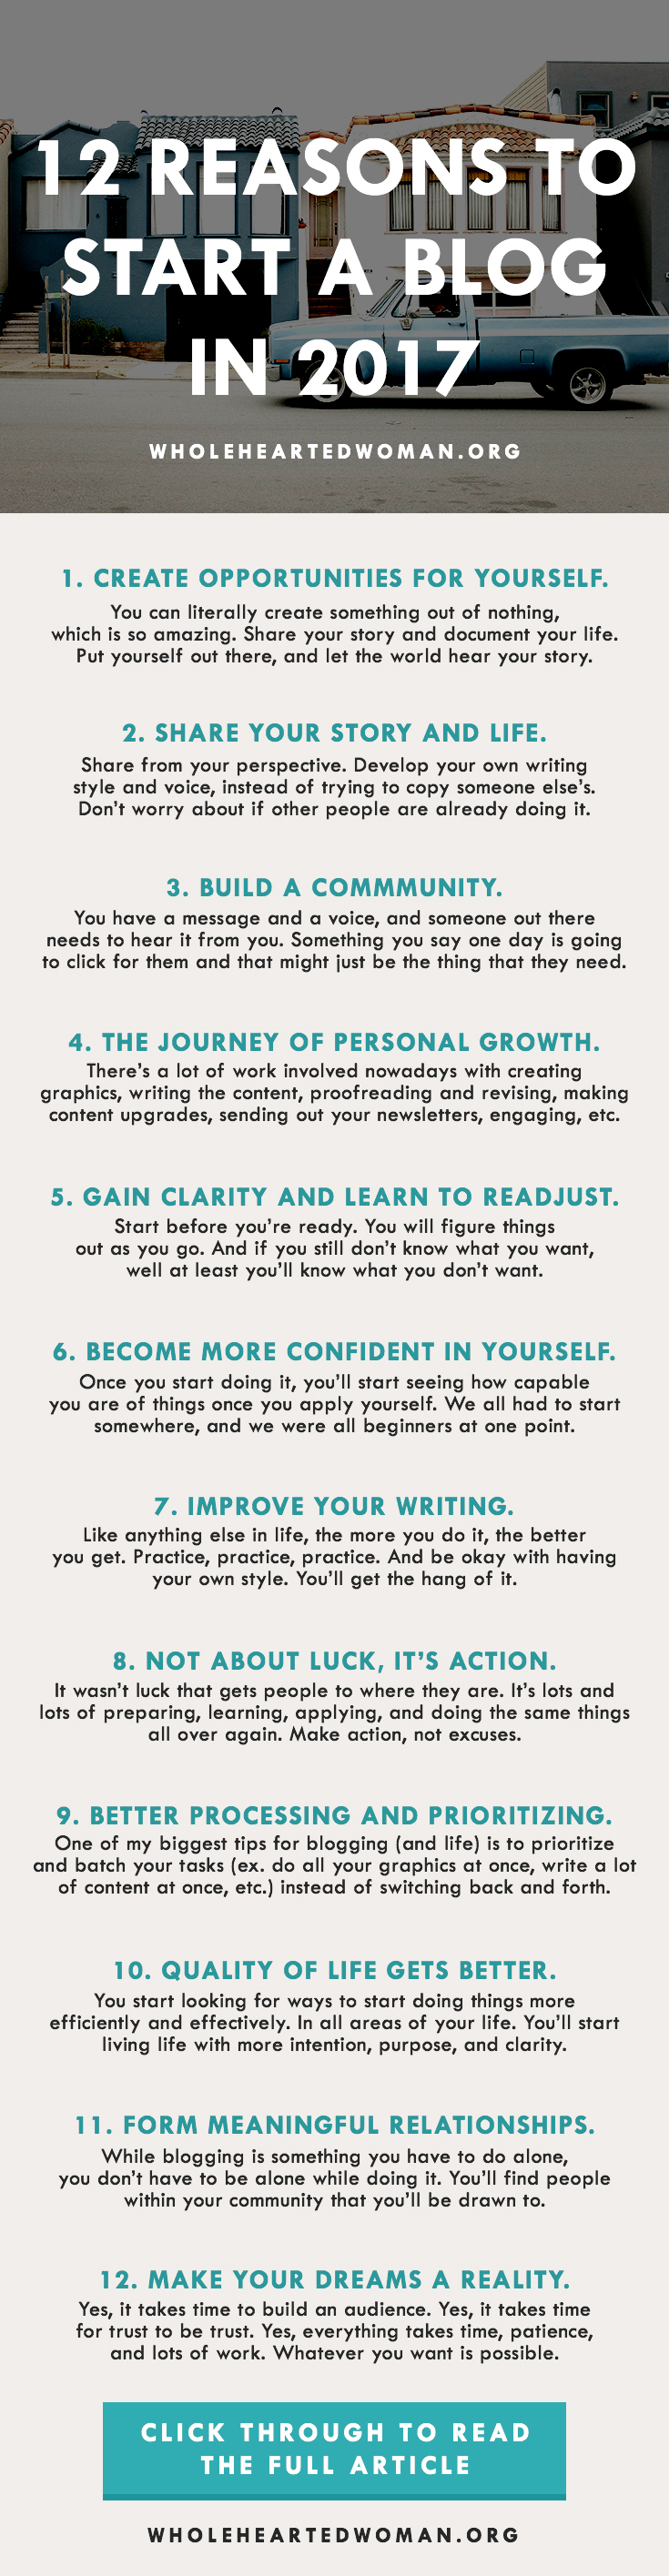 12 Reasons To Start A Blog In 2017 | How To Start A Blog | Why You Should Blog | How Blogging Can Help You | Personal Growth And Development Blog | Self-Discovery | Lifestyle | Blogging In 2017 | How To Create Your Own Opportunities In Life | How To Improve Your Life